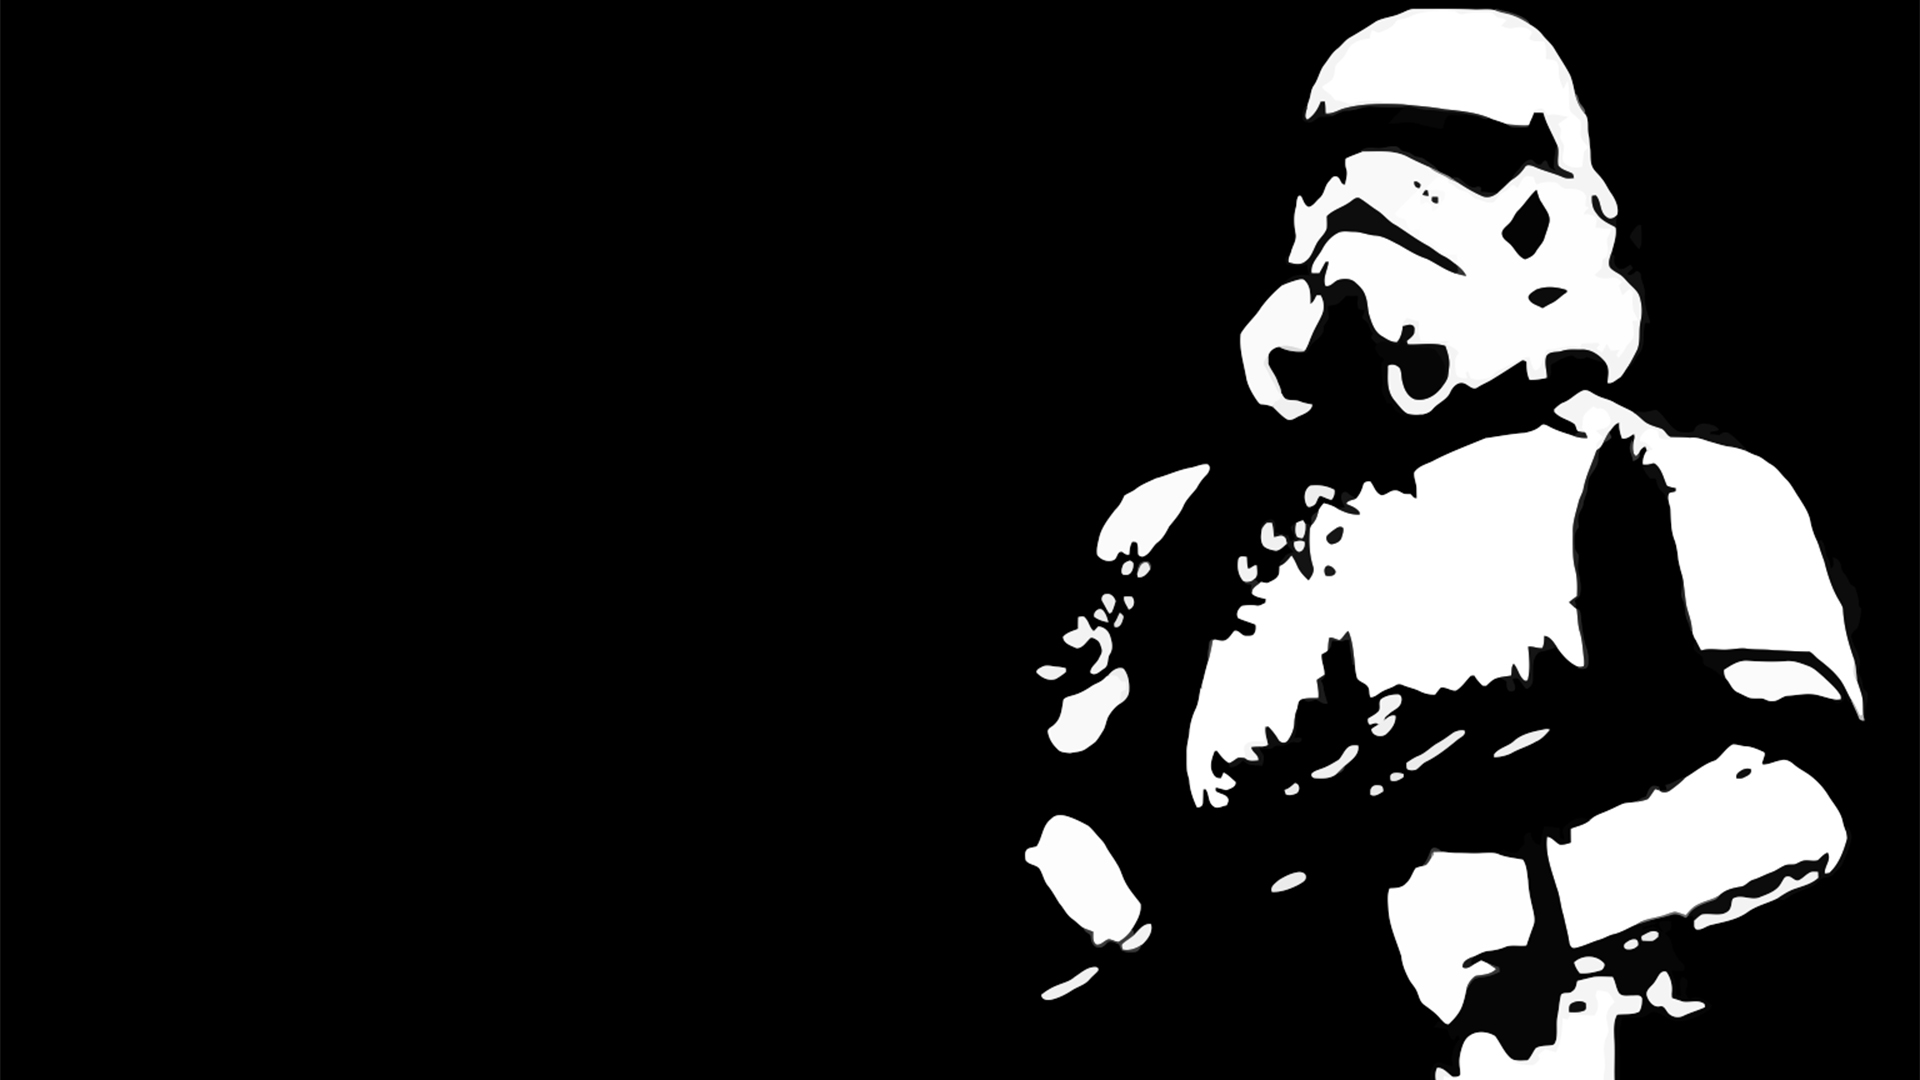 Star Wars Wallpaper 1920x1080 Star Wars Stormtroopers Contrast 1920x1080